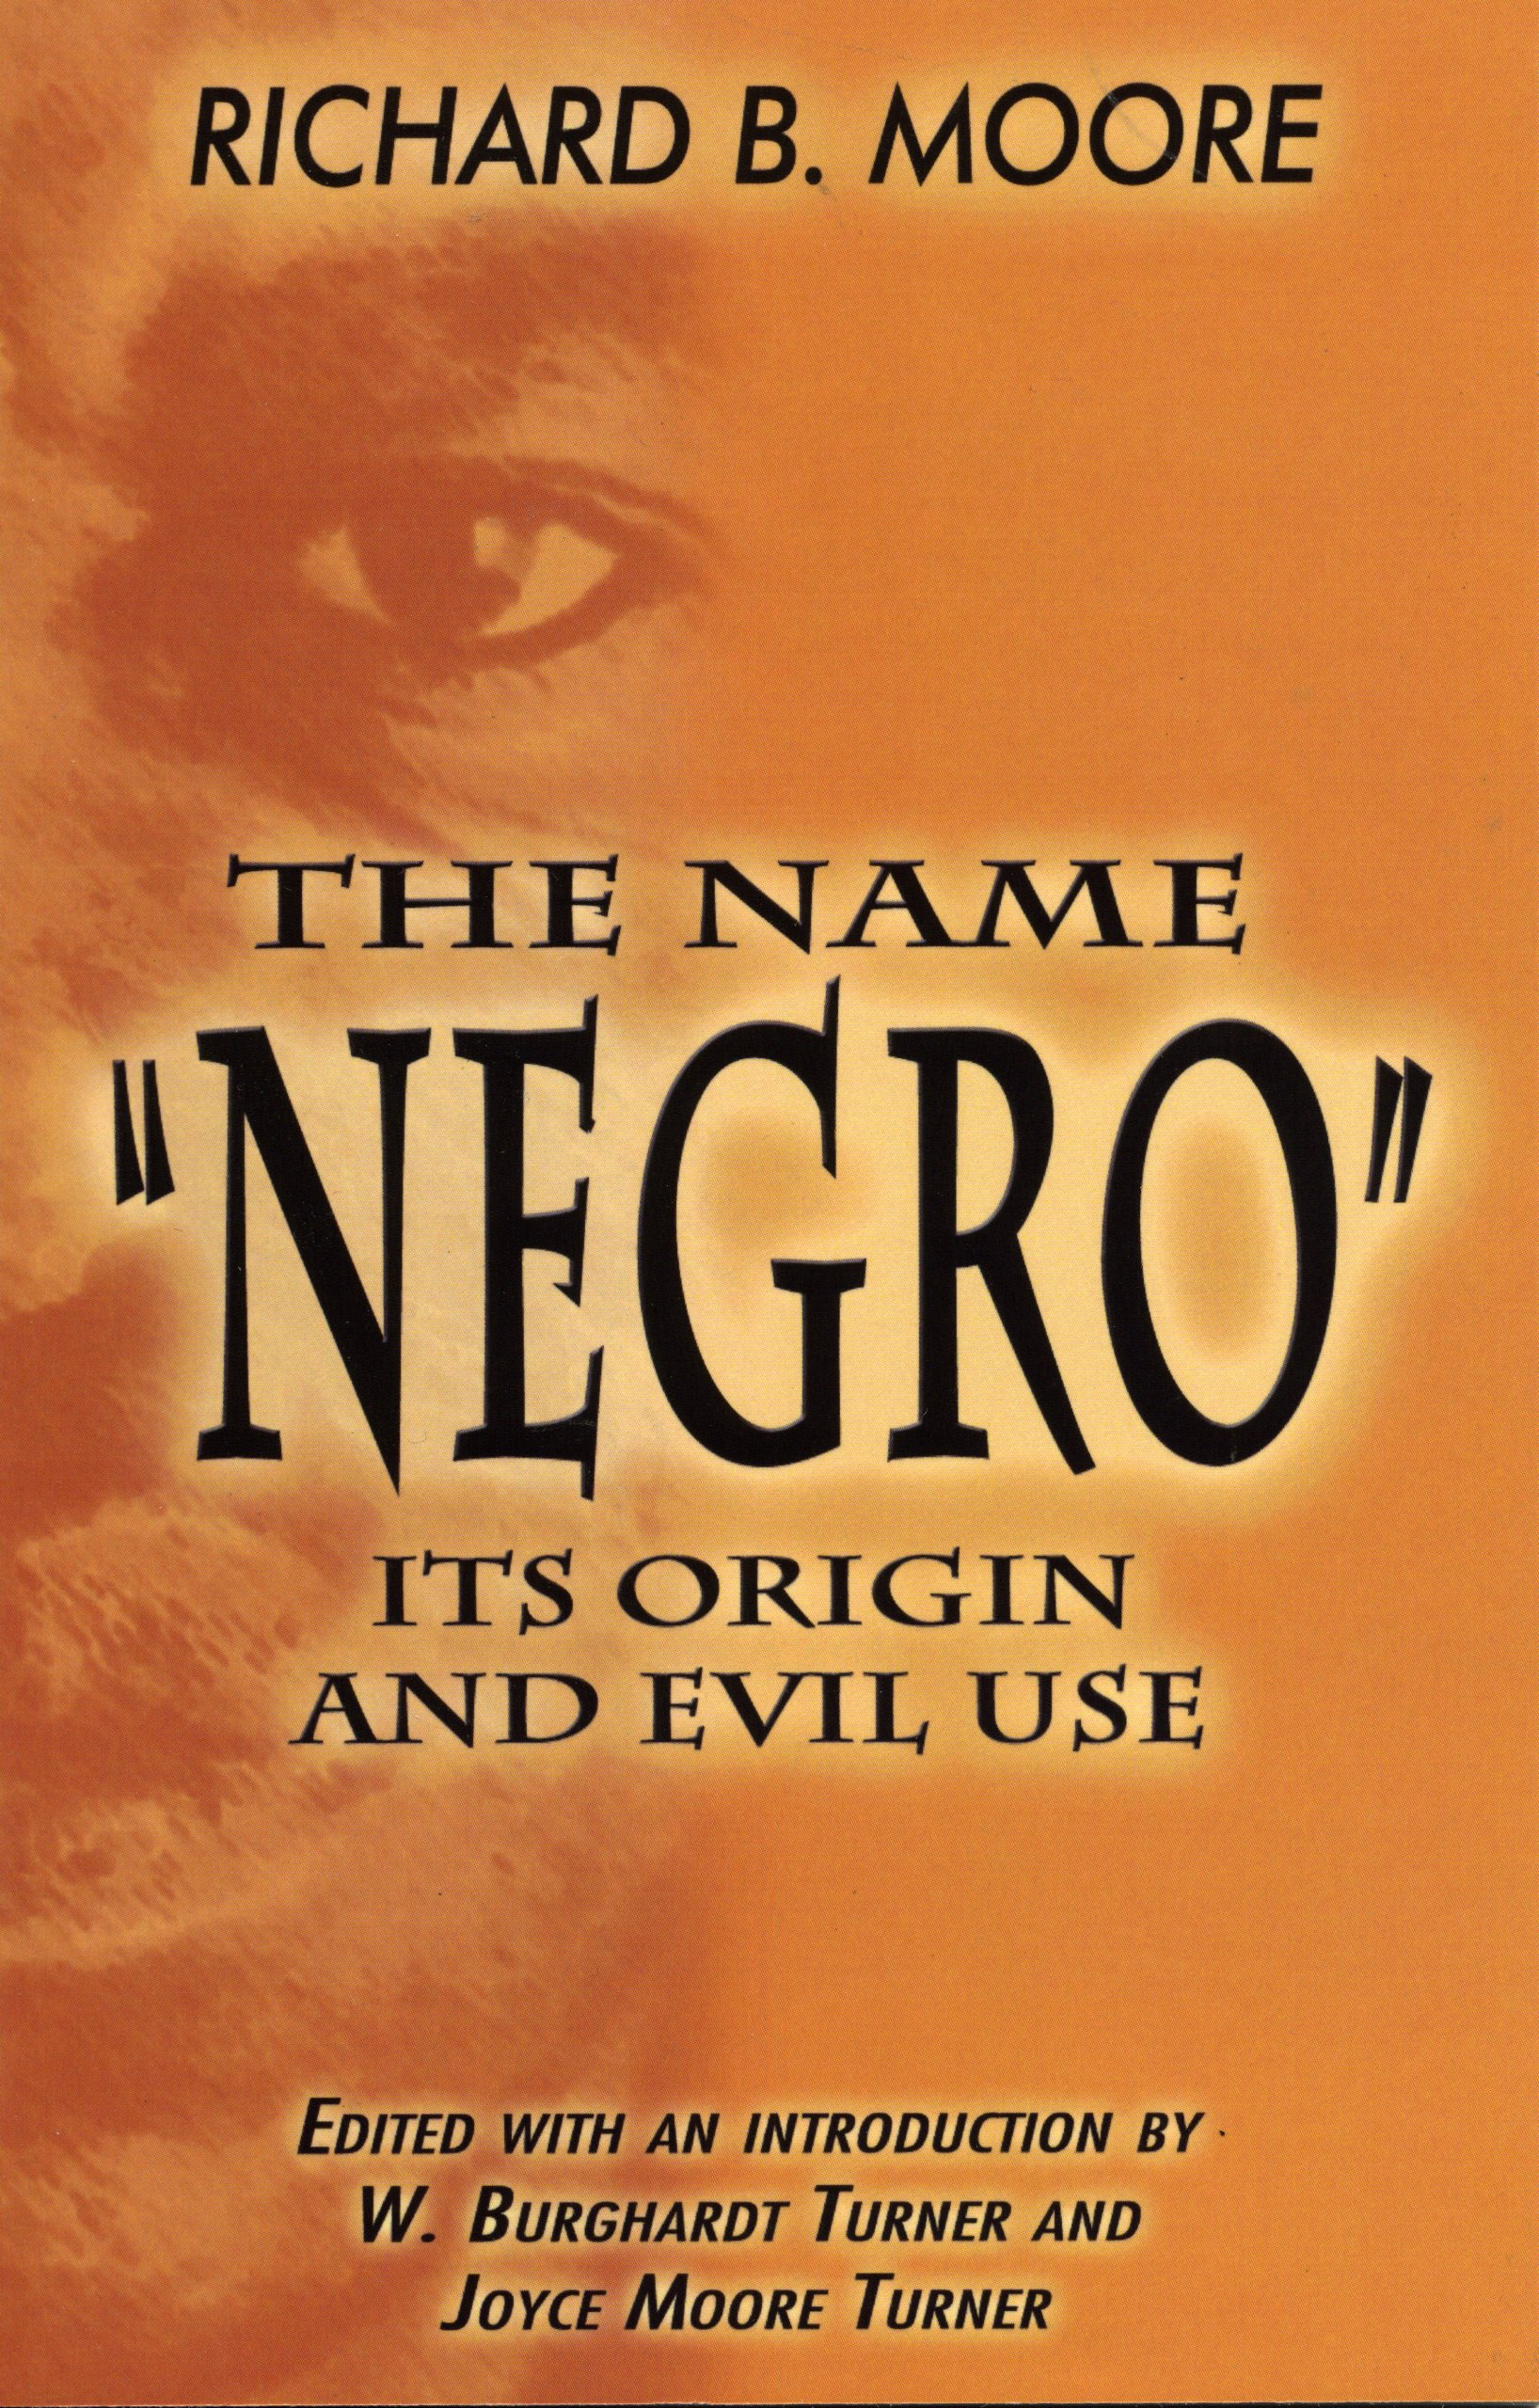 The Name 'Negro' Its Origin and Evil Use